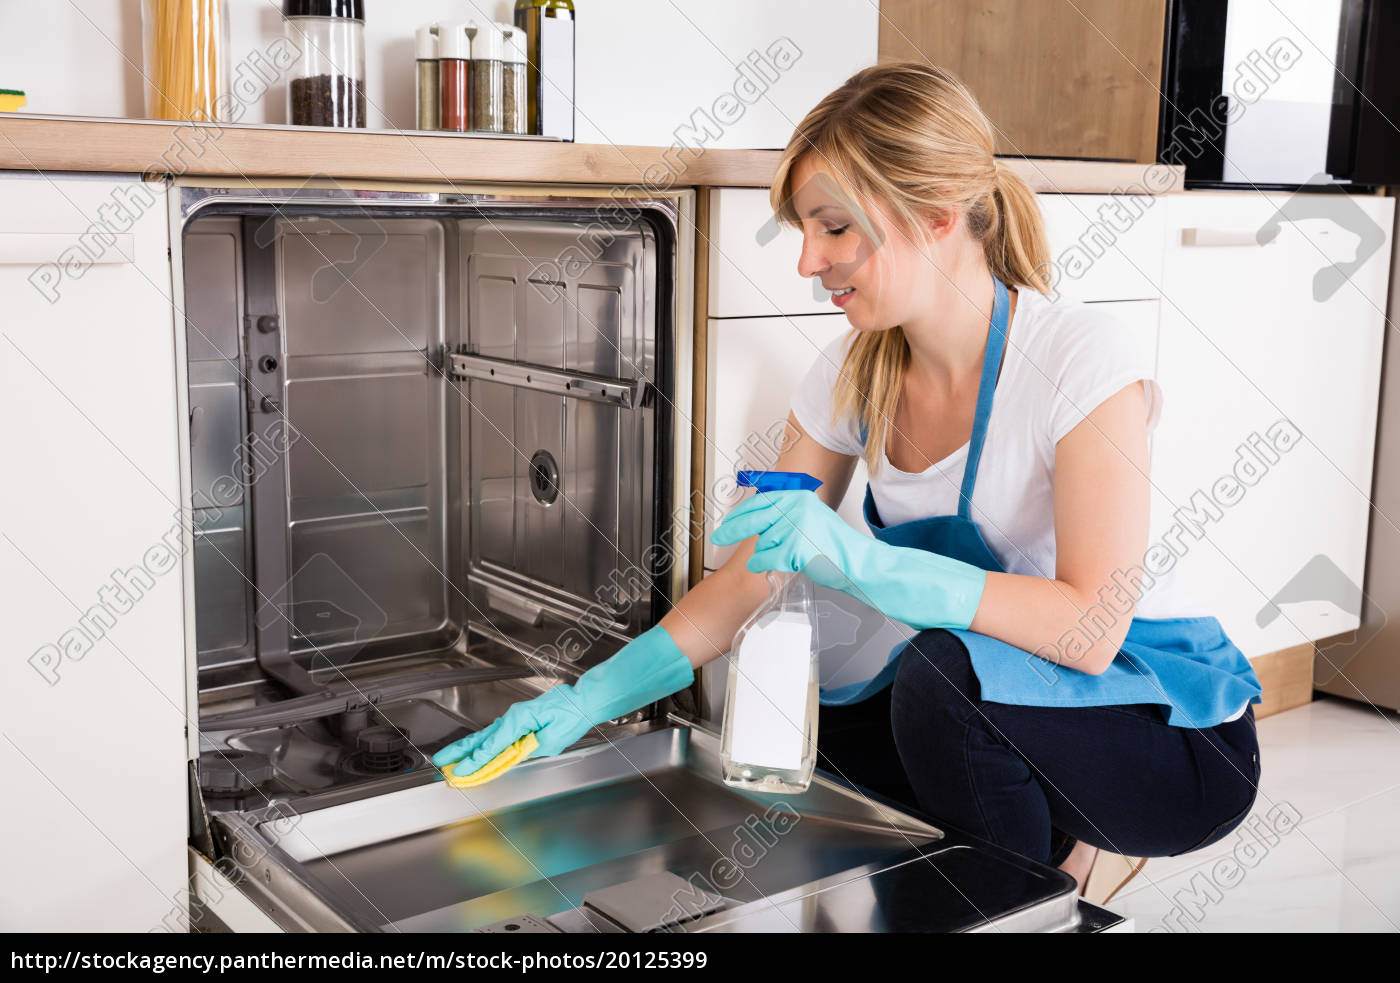 woman, cleaning, dishwasher, in, kitchen - 20125399